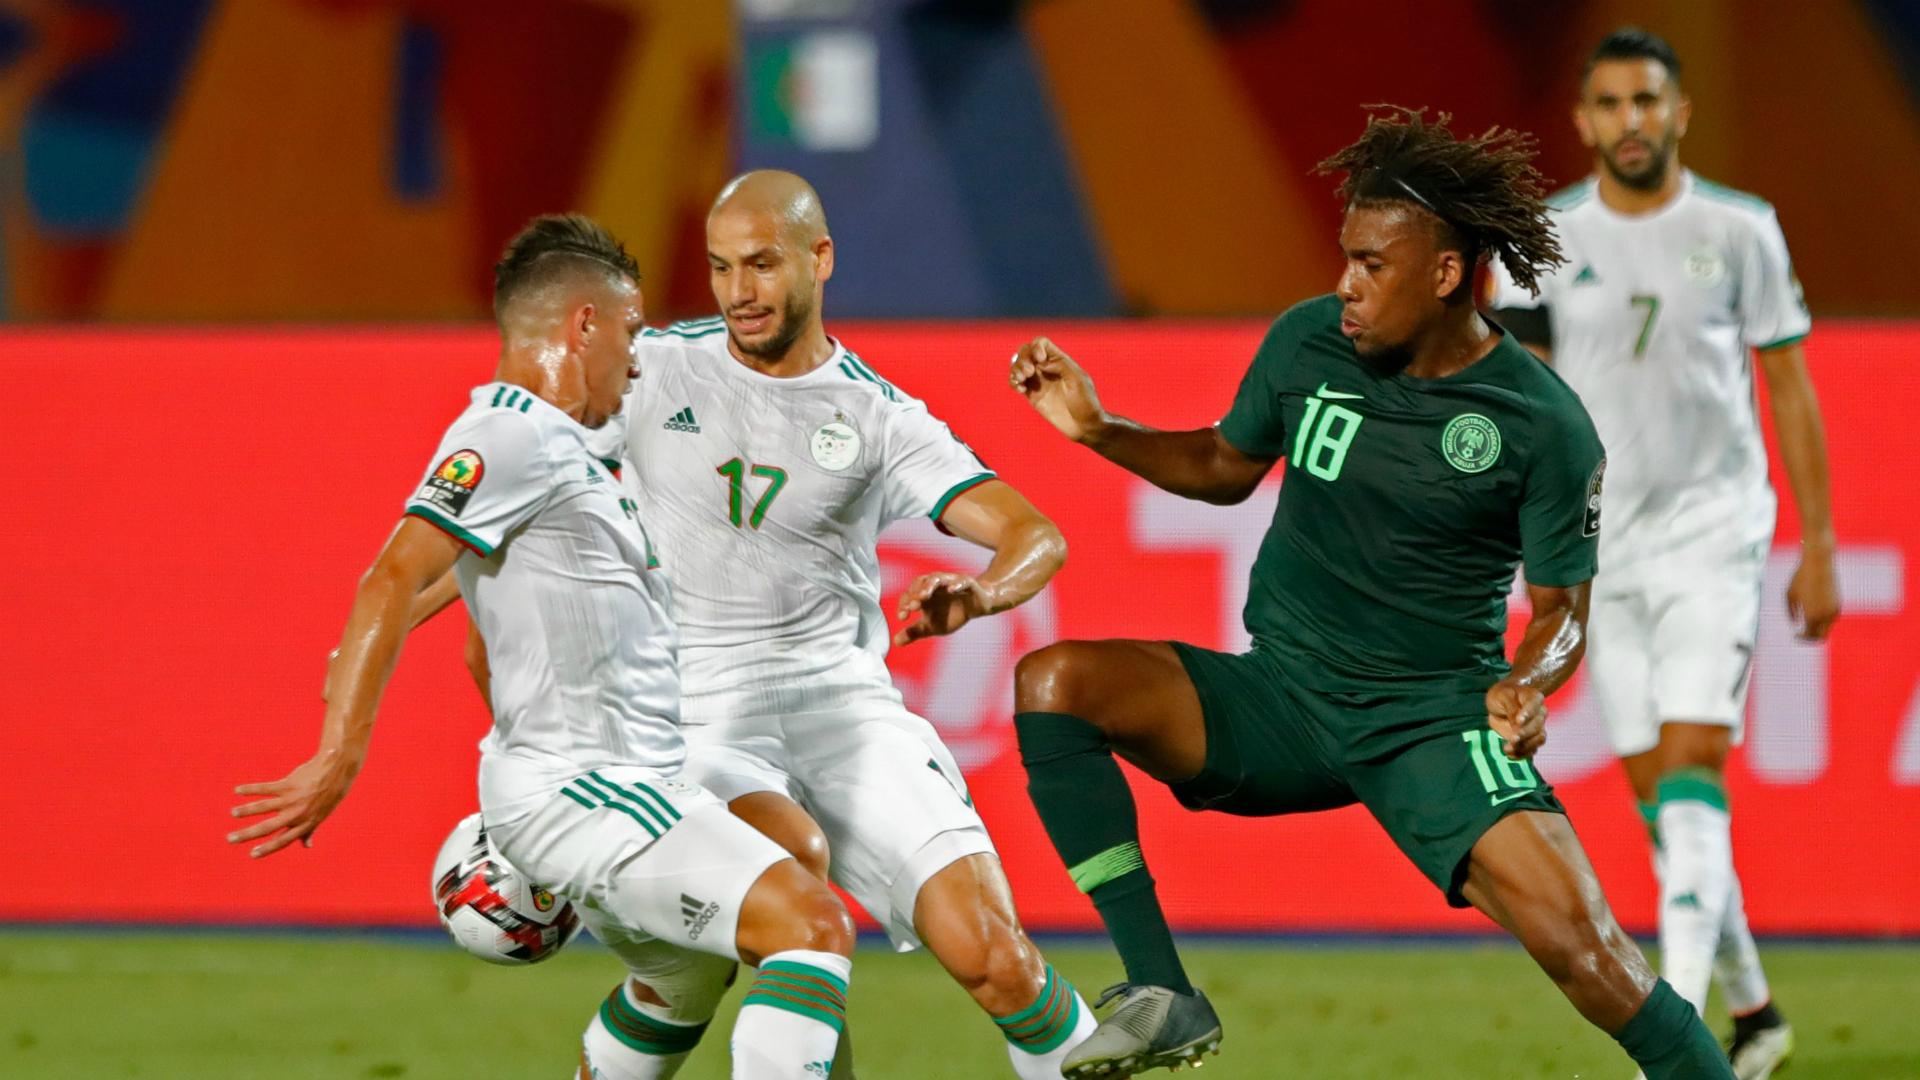 Afcon 2019: We fought our hardest against Algeria – Iwobi